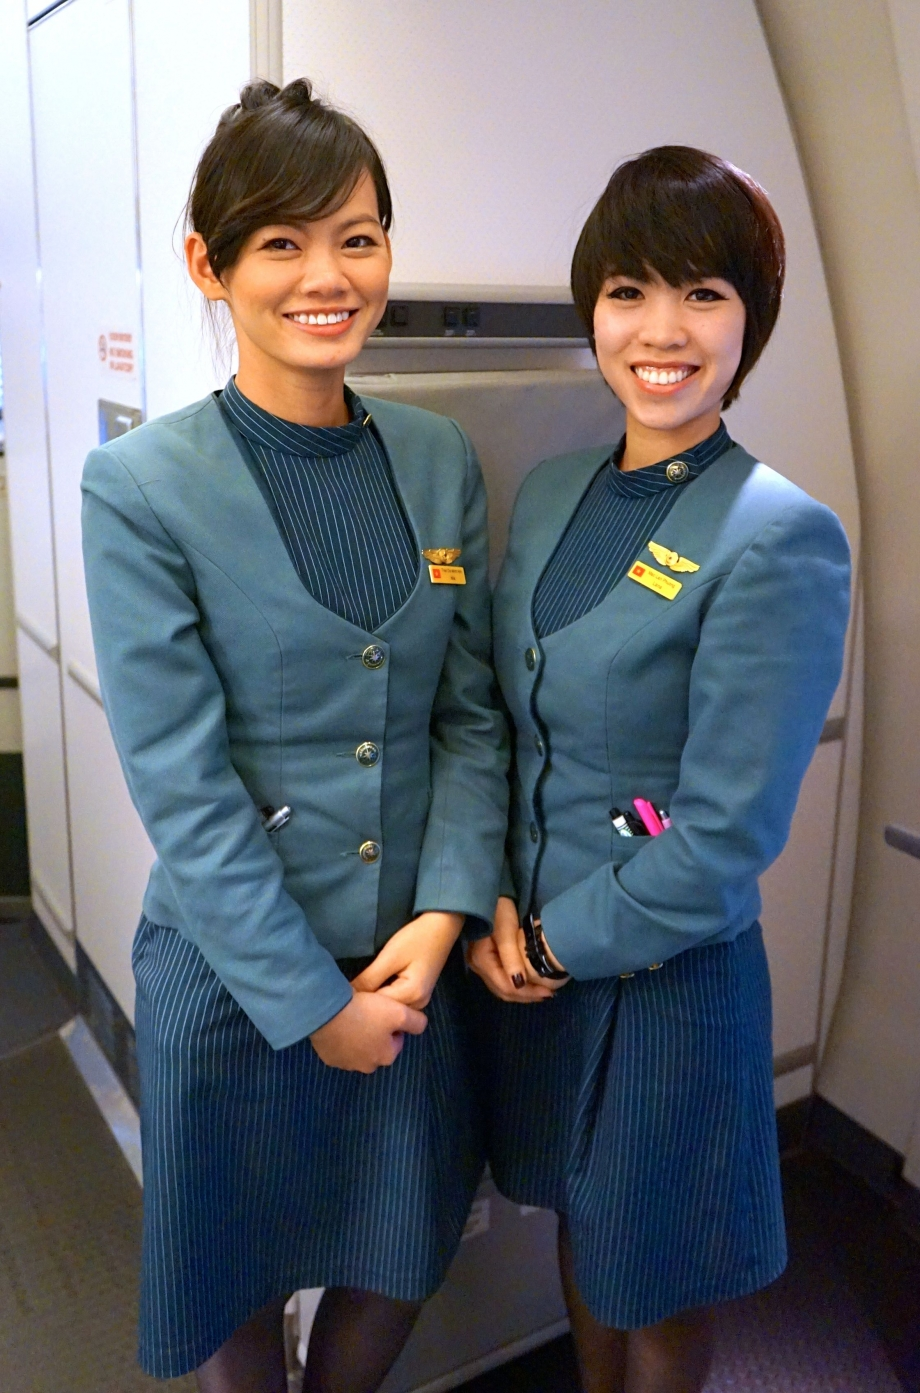 Eva Air Stewardess On Royal Laurel Class - AspirantSG